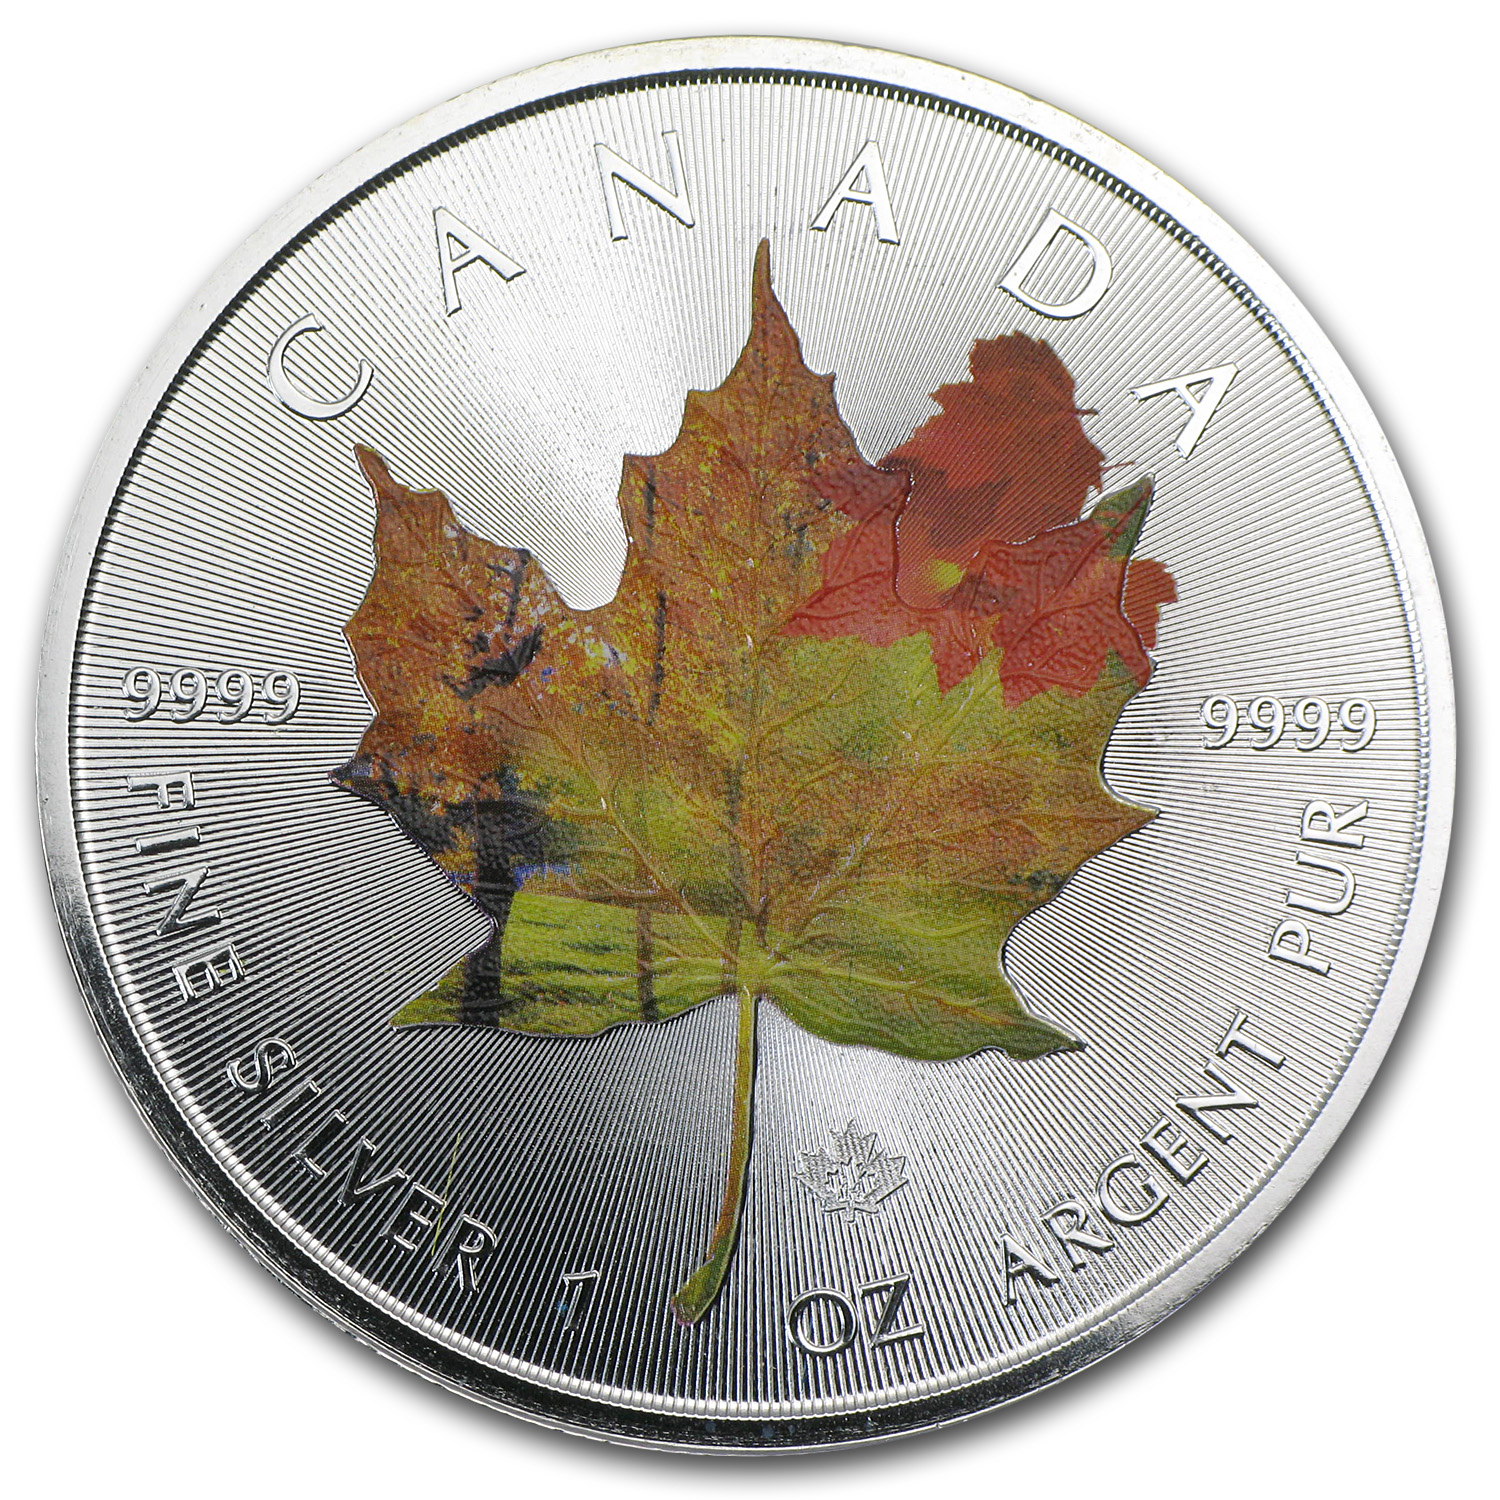 2014 1 oz Silver Canadian Maple Leaf - Autumn Landscape